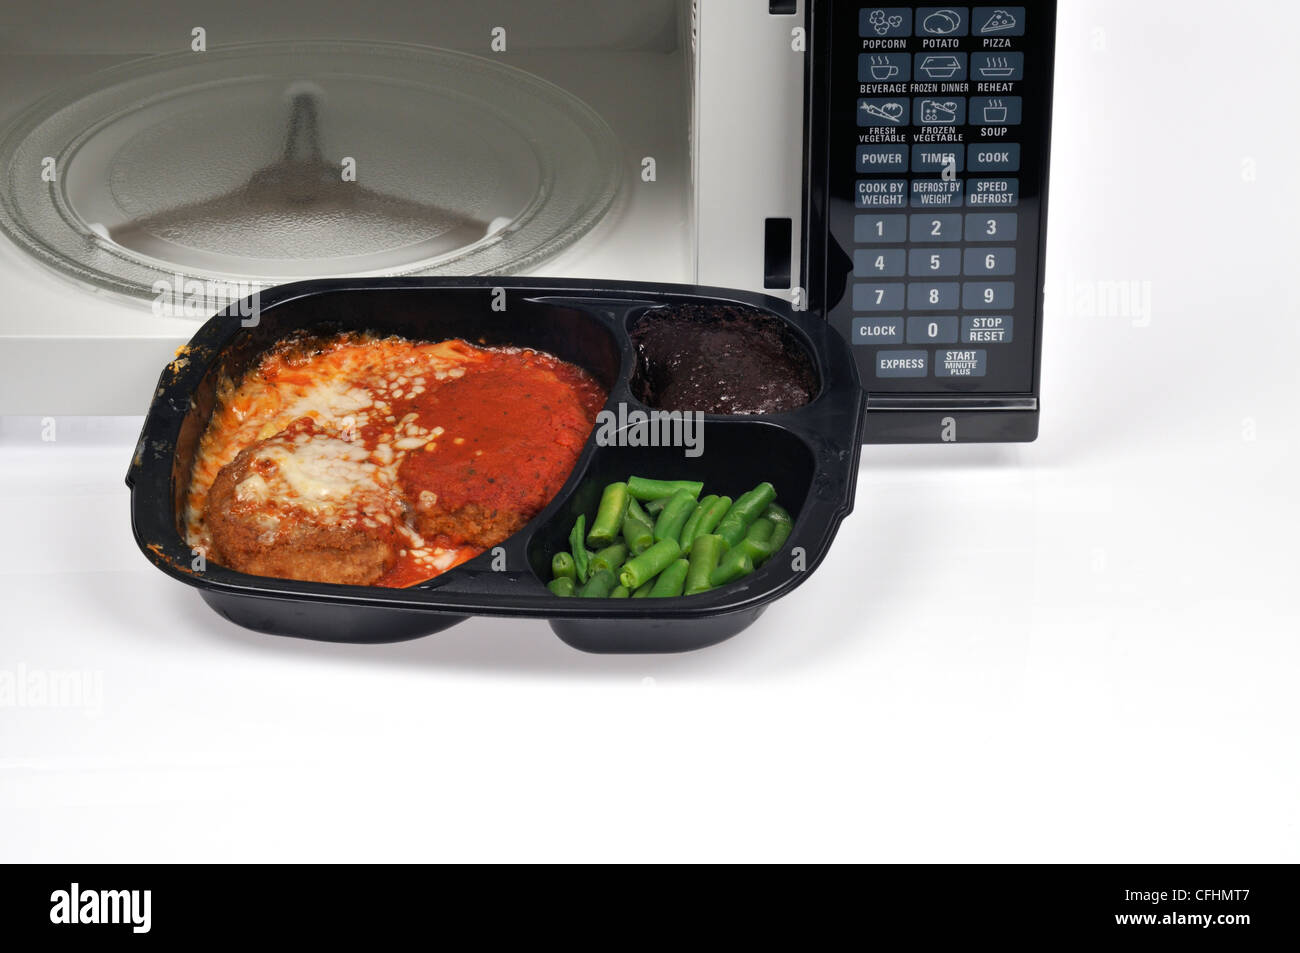 Cooked veal parmigiana readymeal tv dinner with green beans and dessert brownie in front of microwave oven with - Stock Image